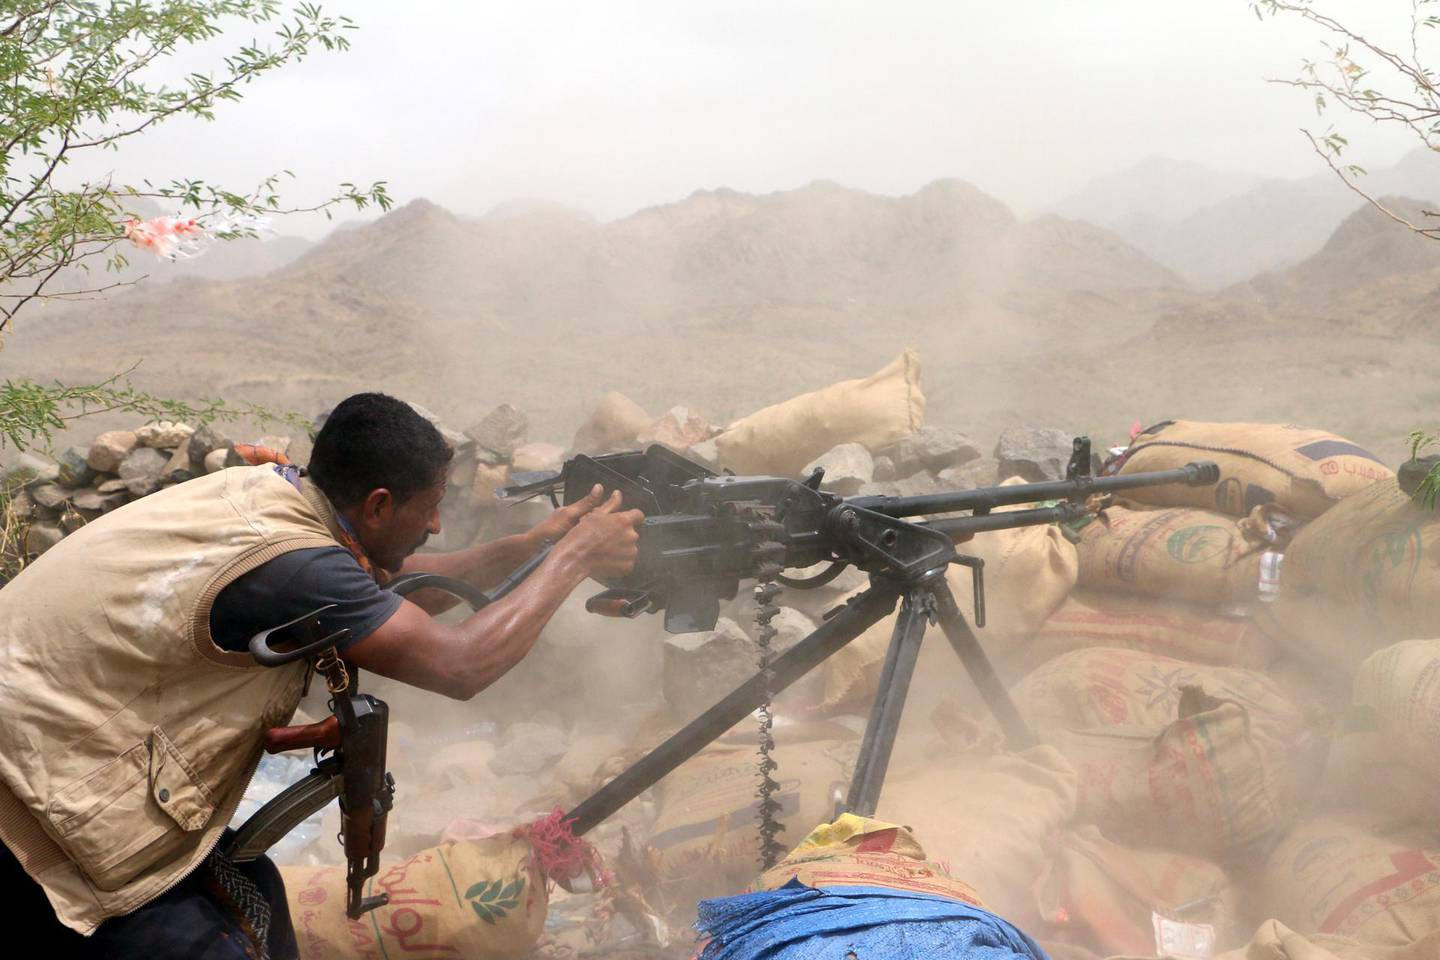 epa06912151 A member of Yemeni government forces fires a heavy machine gun during an offensive against Houthi positions on the outskirts of the western port city of Hodeidah, Yemen, 26 July 2018. According to reports, Yemen has been engulfed in a violent conflict between the Saudi-backed government and Houthi rebels since 2015, while UN Special Envoy to Yemen Martin Griffiths tires to push for a deal with Houthi militia leaders to cede control of the Red Sea port of Hodeidah to a UN-supervised committee, in an attempt to end the Saudi-led coalition assault on Hodeidah city.  EPA/NAJEEB ALMAHBOOBI